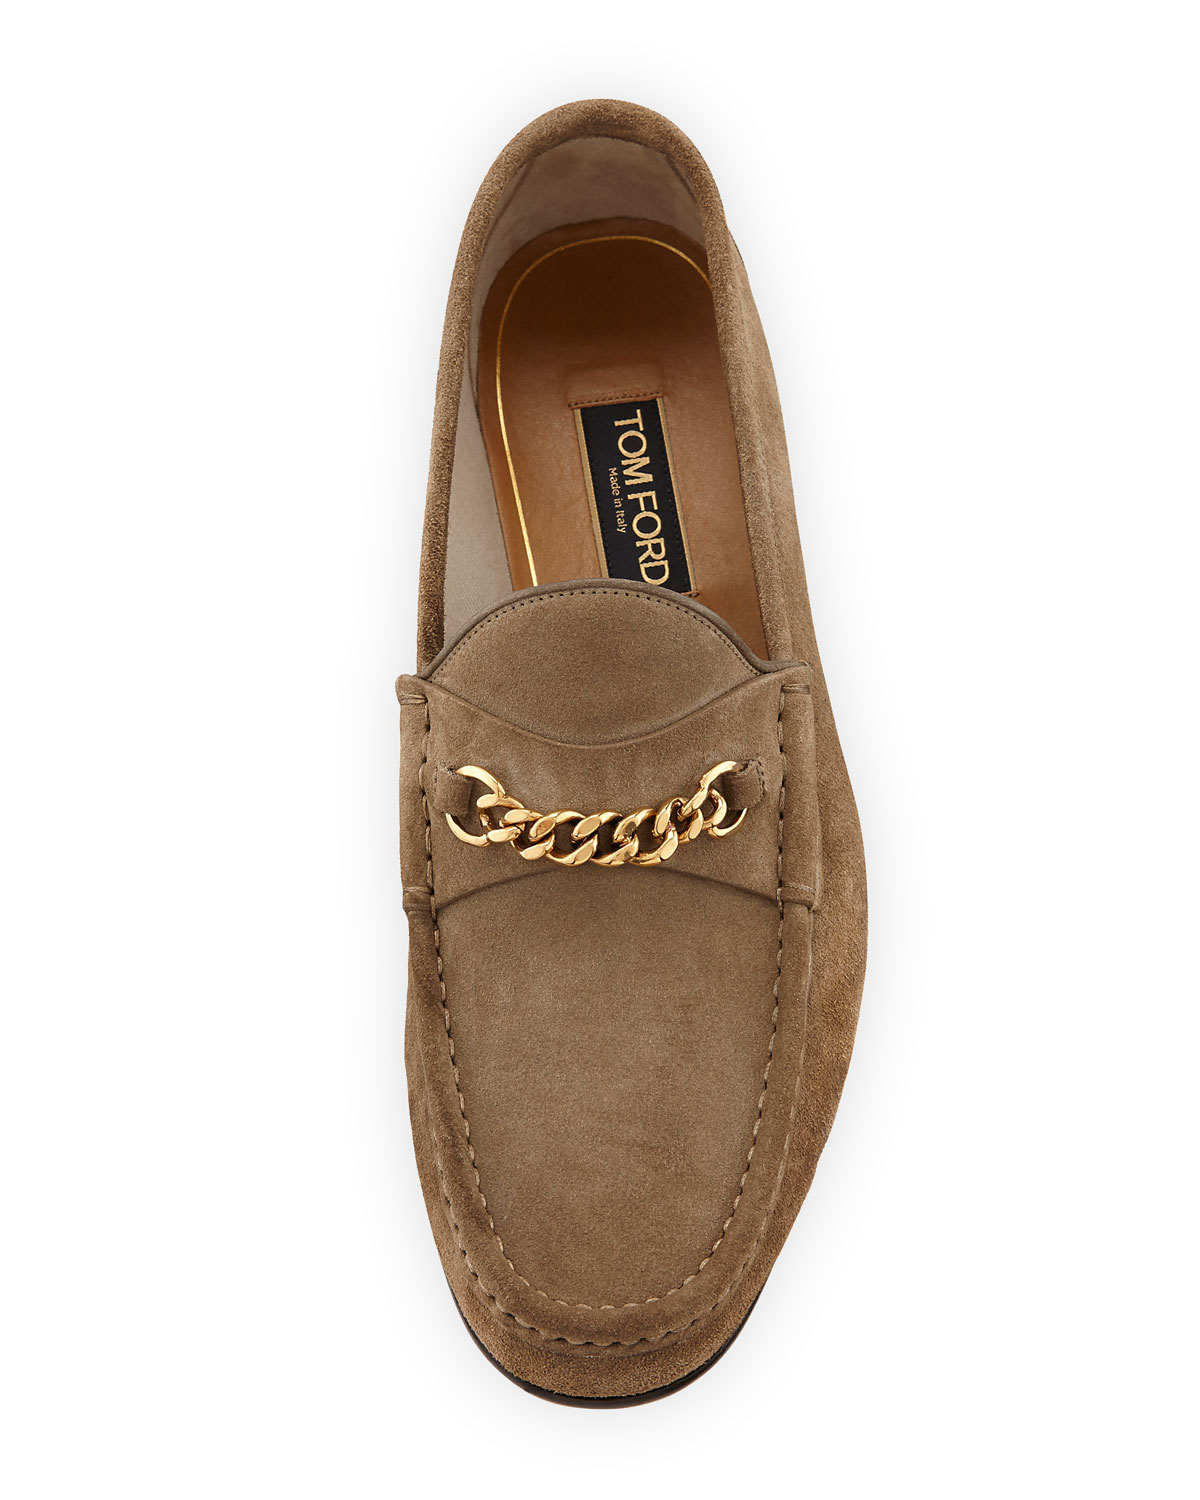 4649a64d3 TOM FORD Suede Chain-Link Loafer, Tan | Neiman Marcus